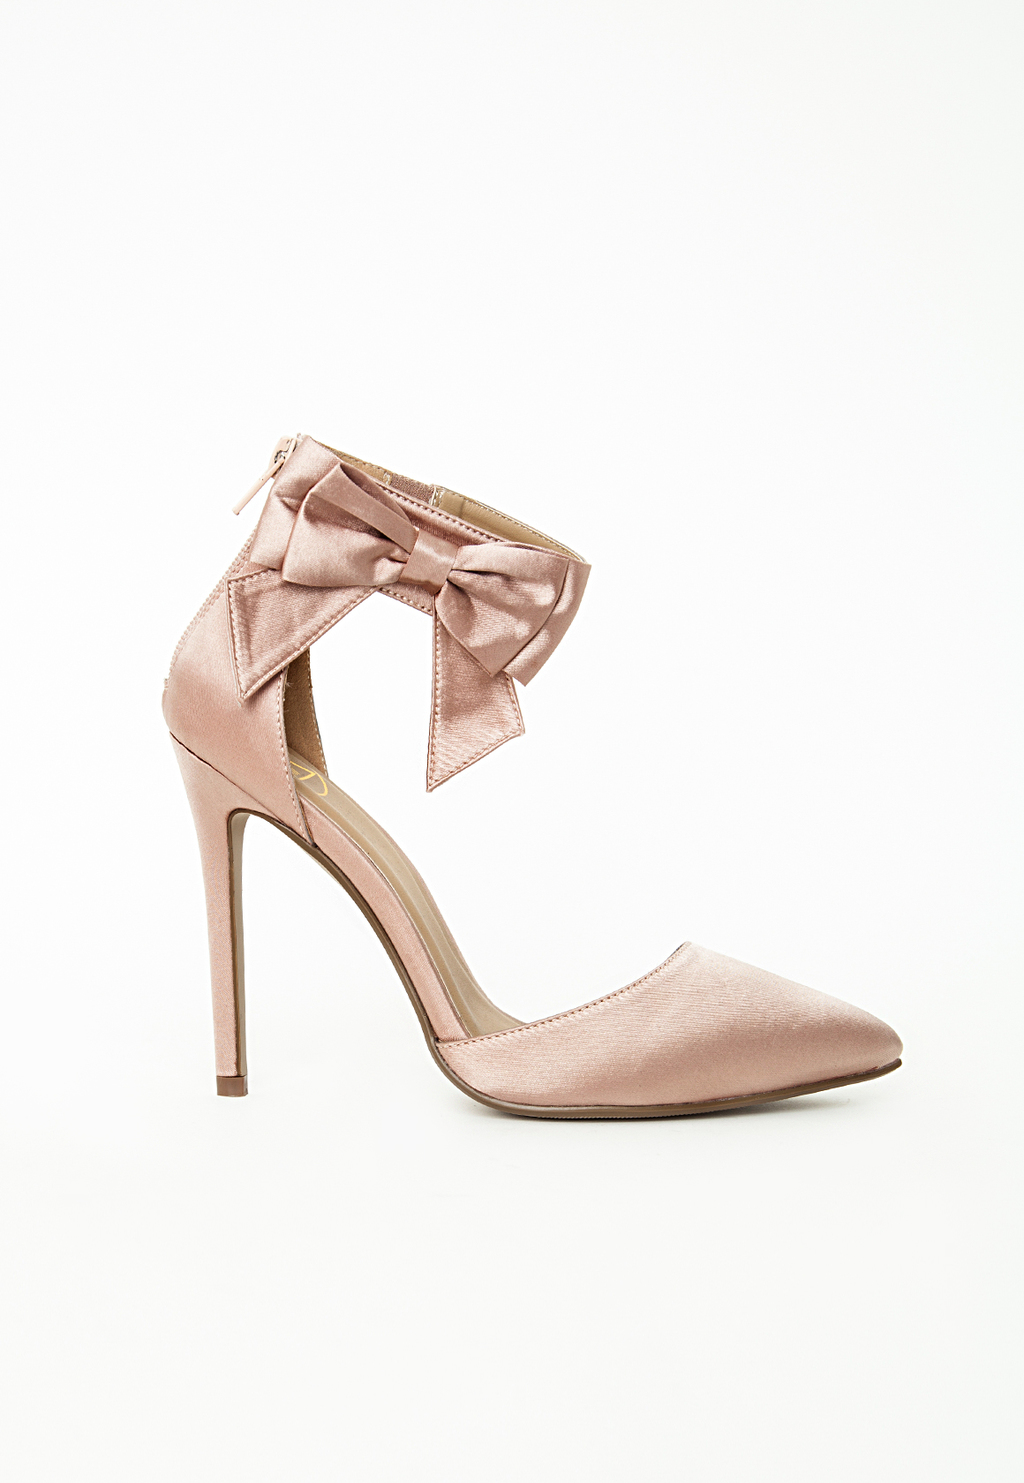 Ankle Strap Bow Detail Court Shoes, Pink - predominant colour: nude; occasions: evening, occasion; material: satin; heel height: high; ankle detail: ankle strap; heel: stiletto; toe: pointed toe; style: courts; finish: plain; pattern: plain; embellishment: bow; season: s/s 2015; wardrobe: event